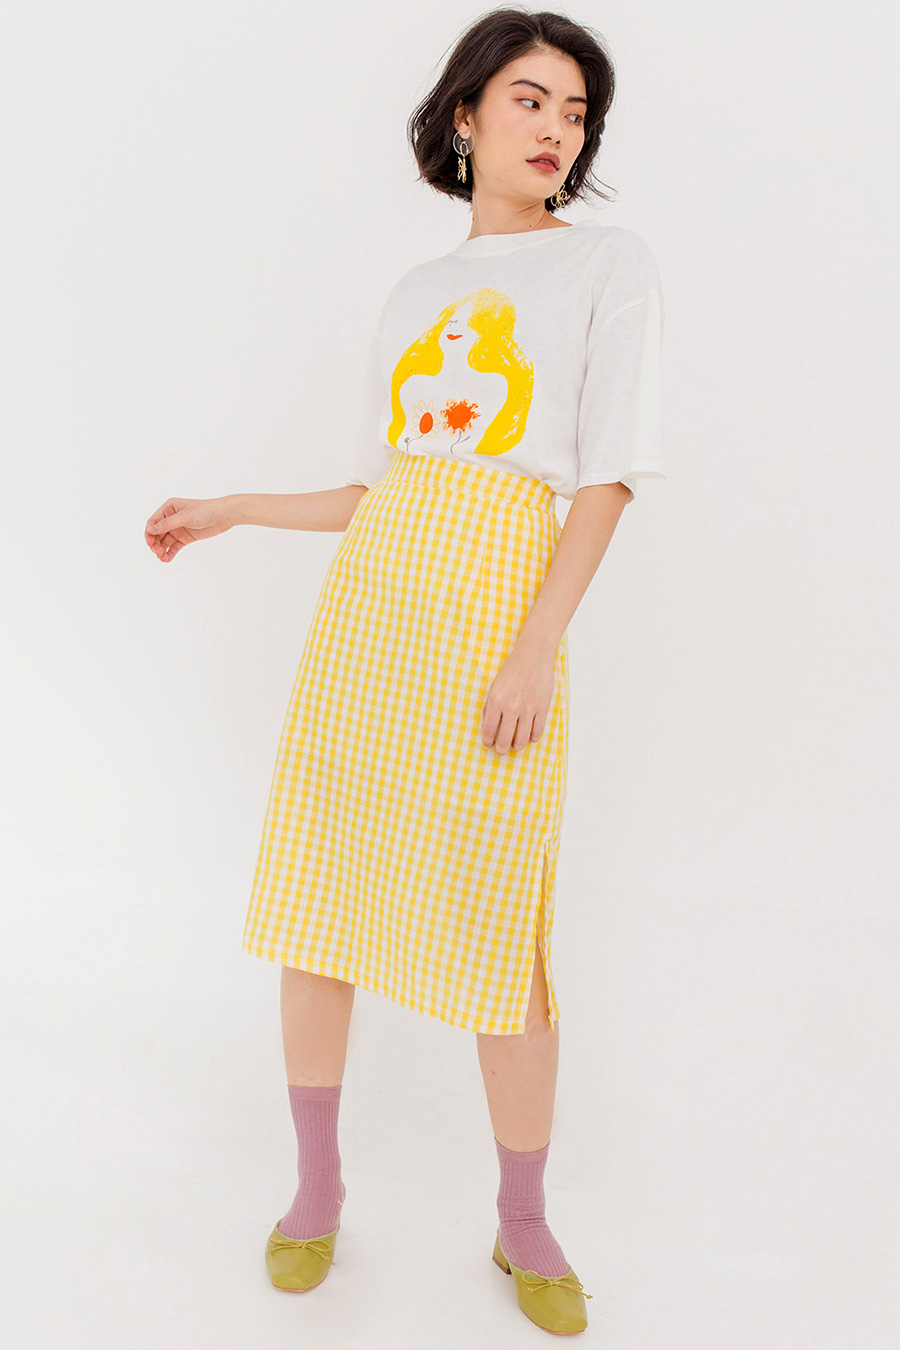 LUCILLE GINGHAM SKIRT - PASTEL YELLOW